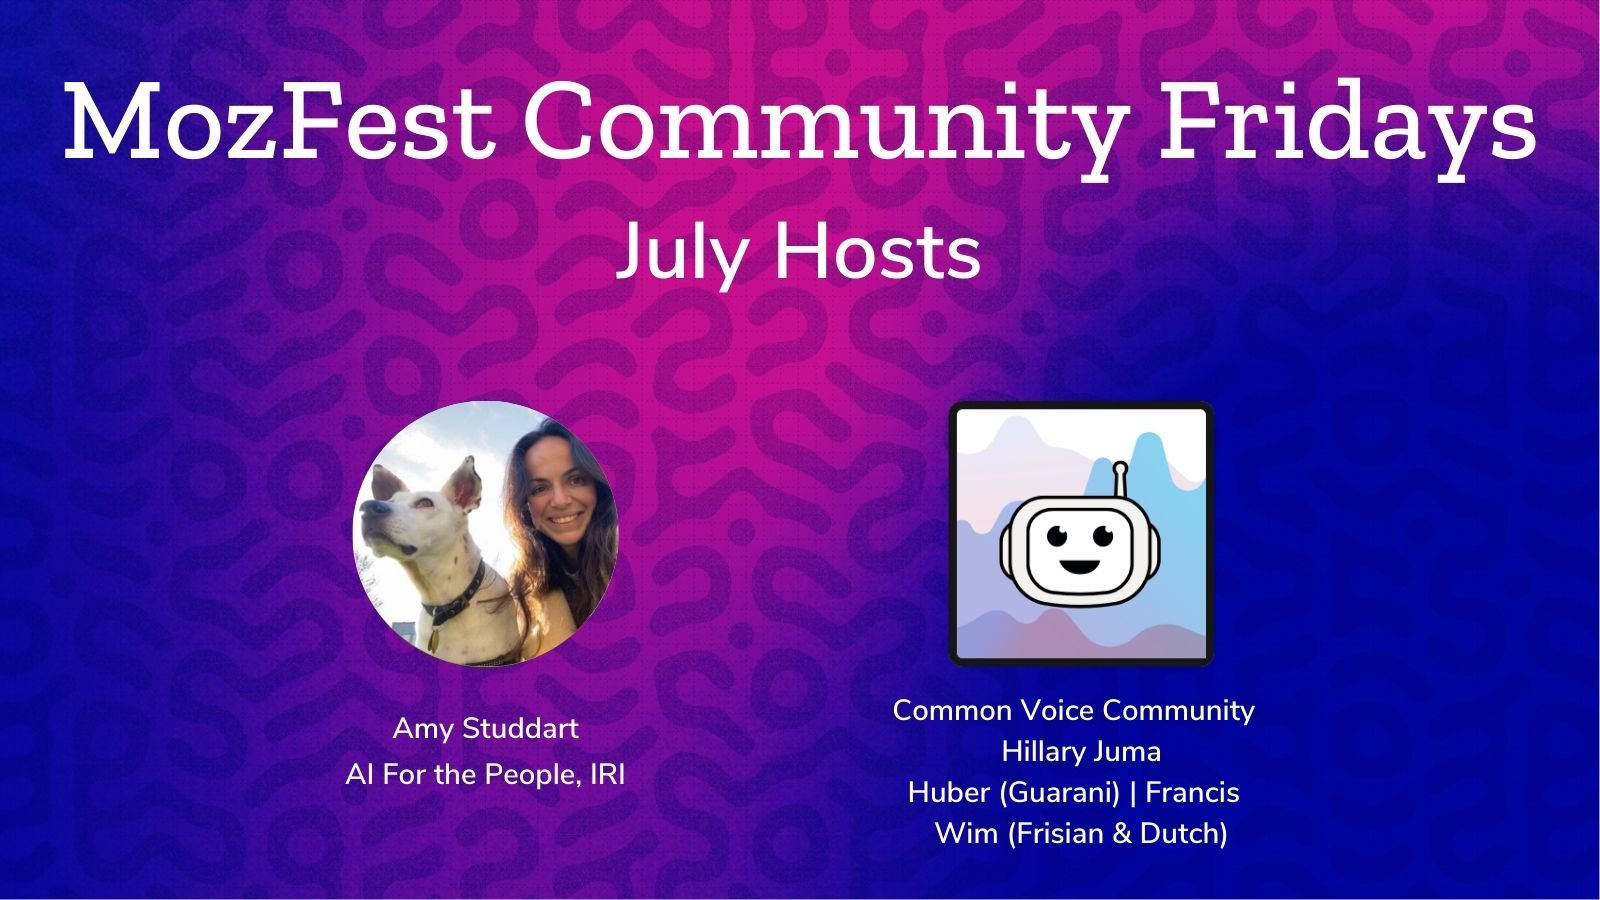 pink and purple graphic with two headshots and white text: MozFest Community Fridays July Hosts: Amy Studdart and Common Voice Community